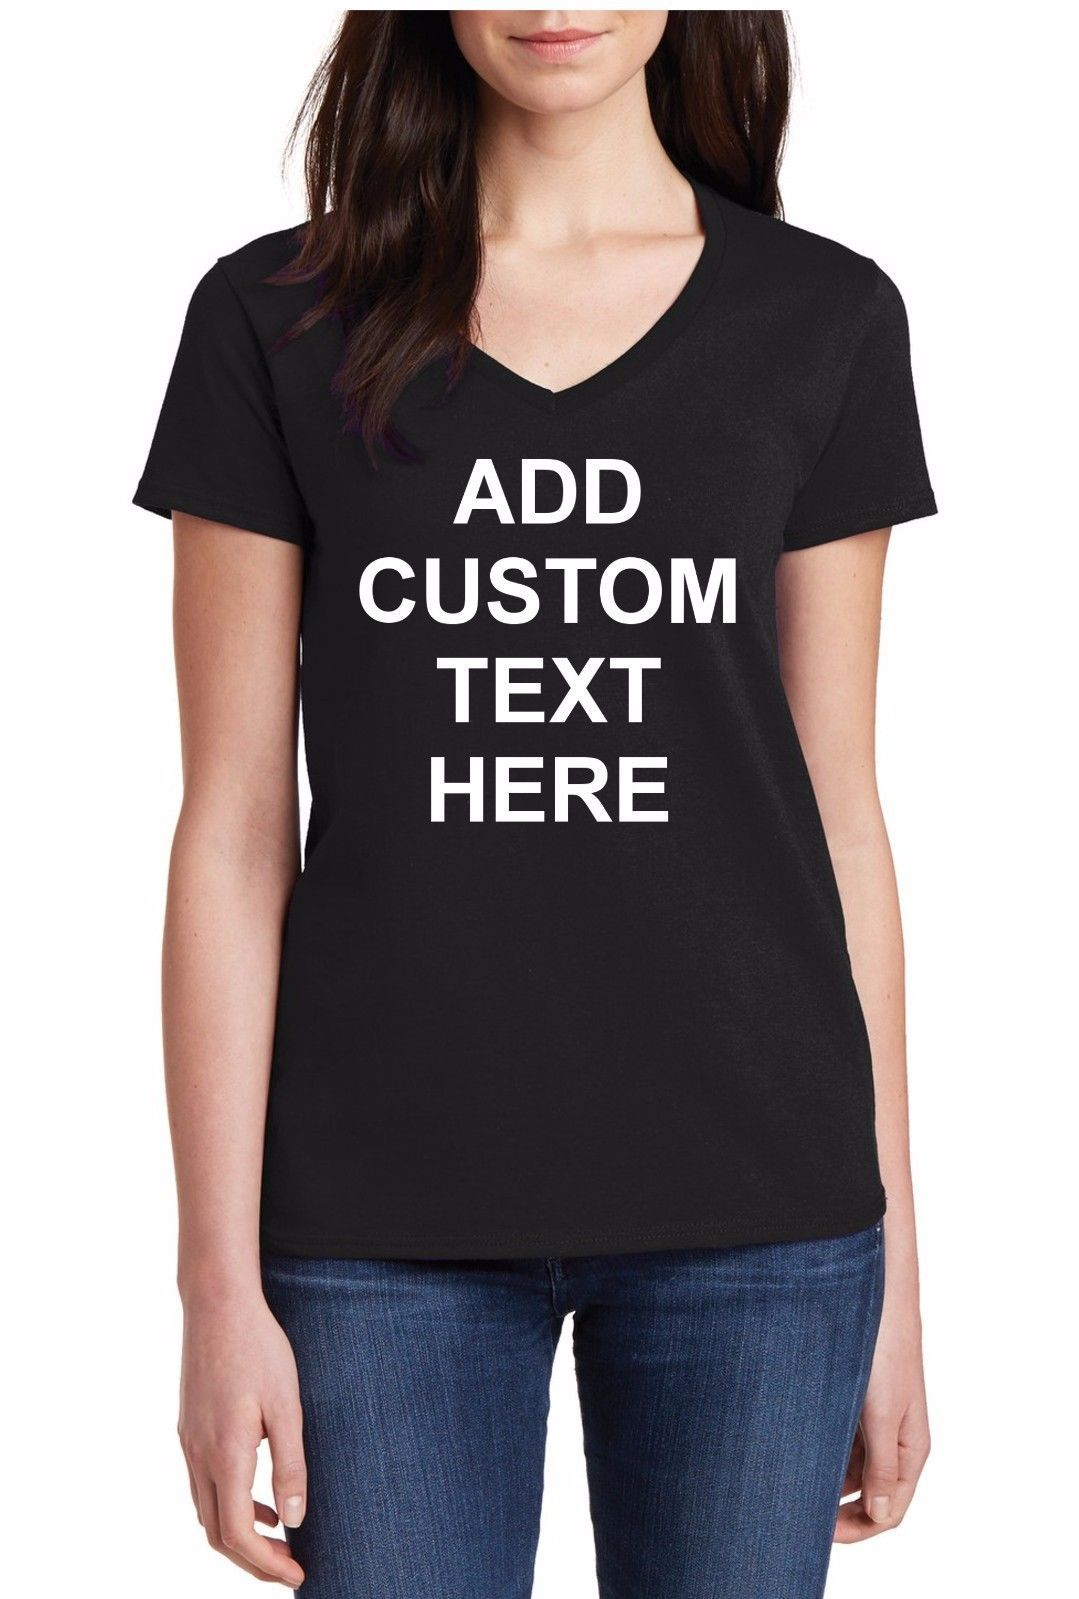 21d45cbe8 V-Neck Custom Personalized T Shirts Your Own Text Business Name T-Shirt Tee  Gift